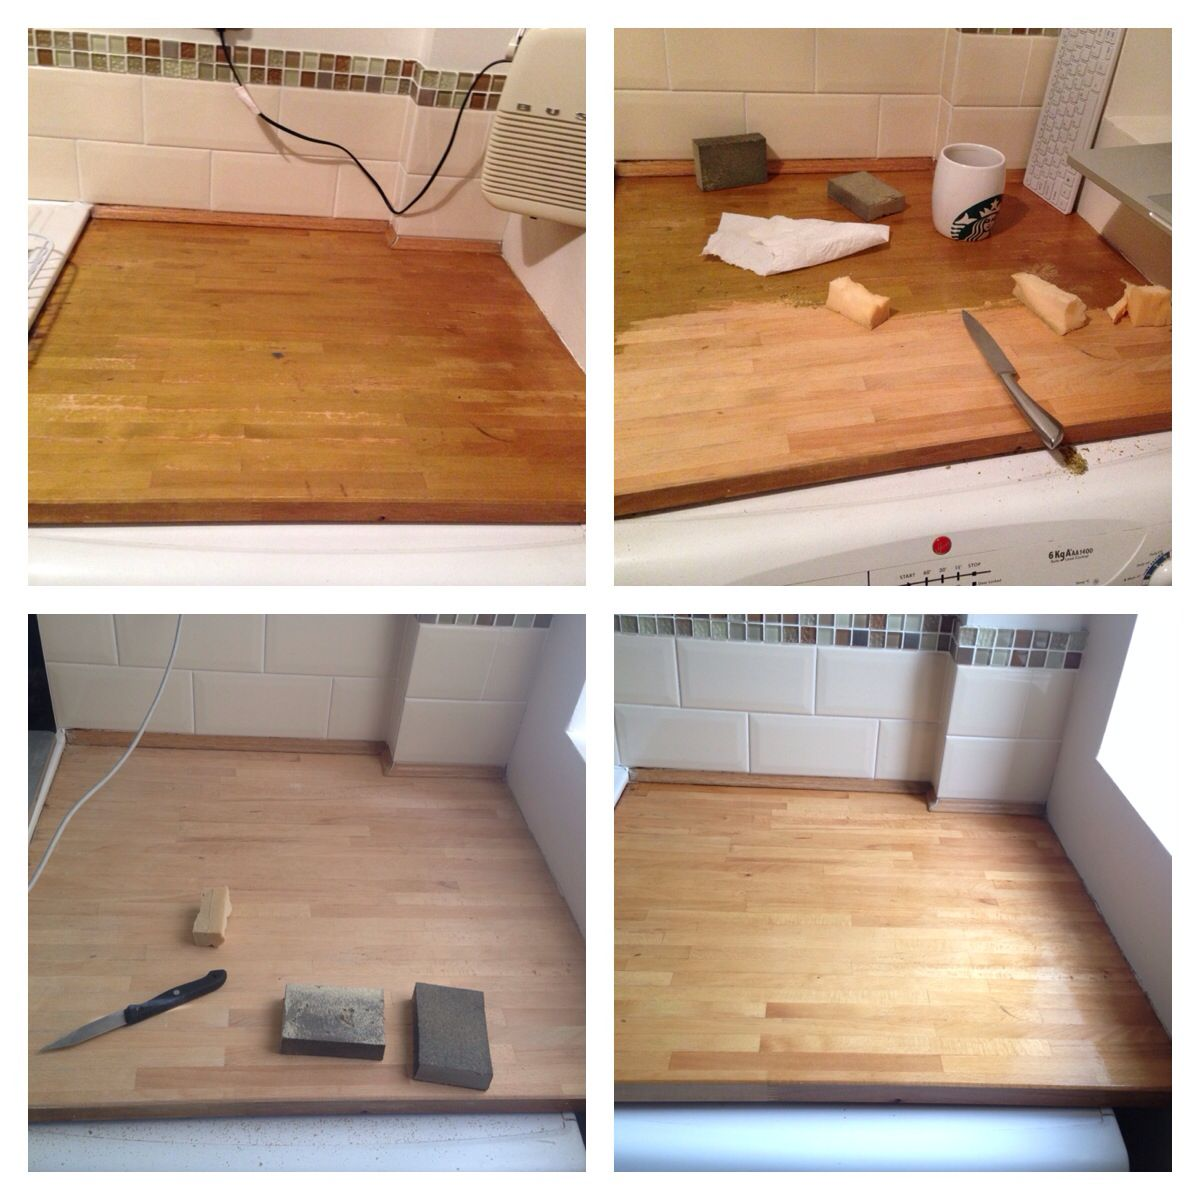 Kitchen Worktop Re Sealing With Howdens Solid Wood Worktop Oil Diy